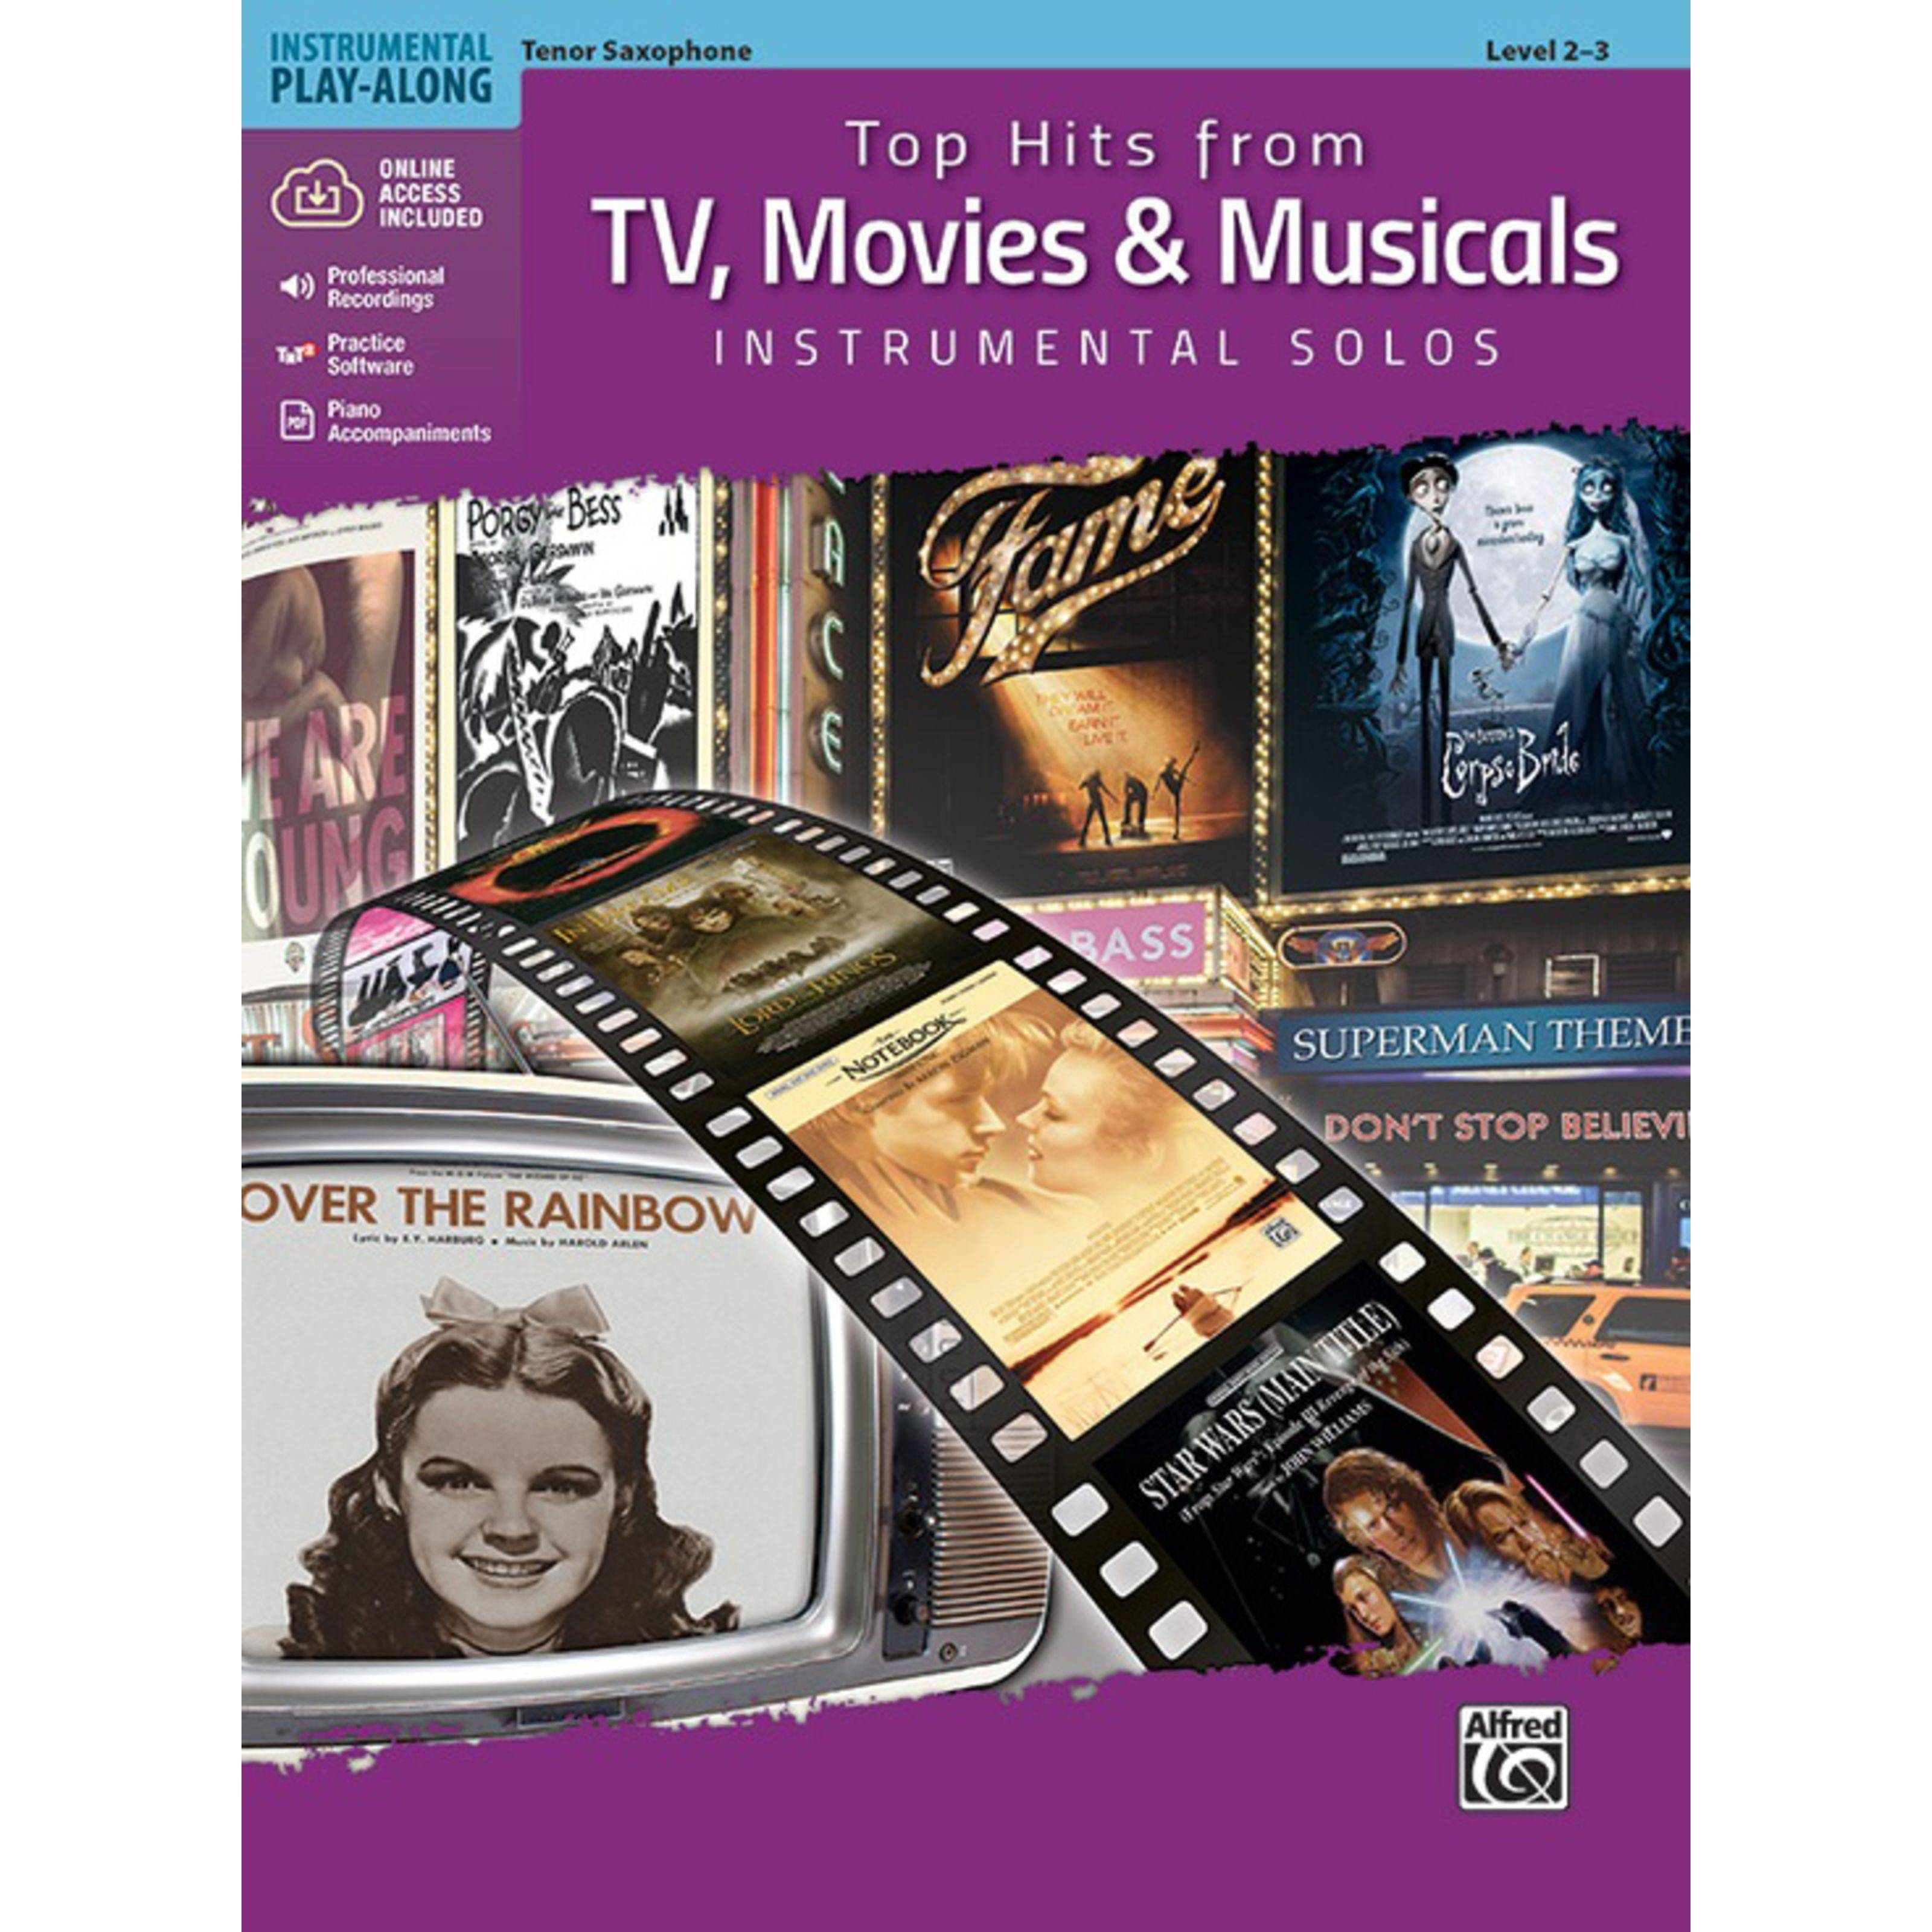 Alfred Music Top Hits from TV, Movies & Musicals – Tenor Sax